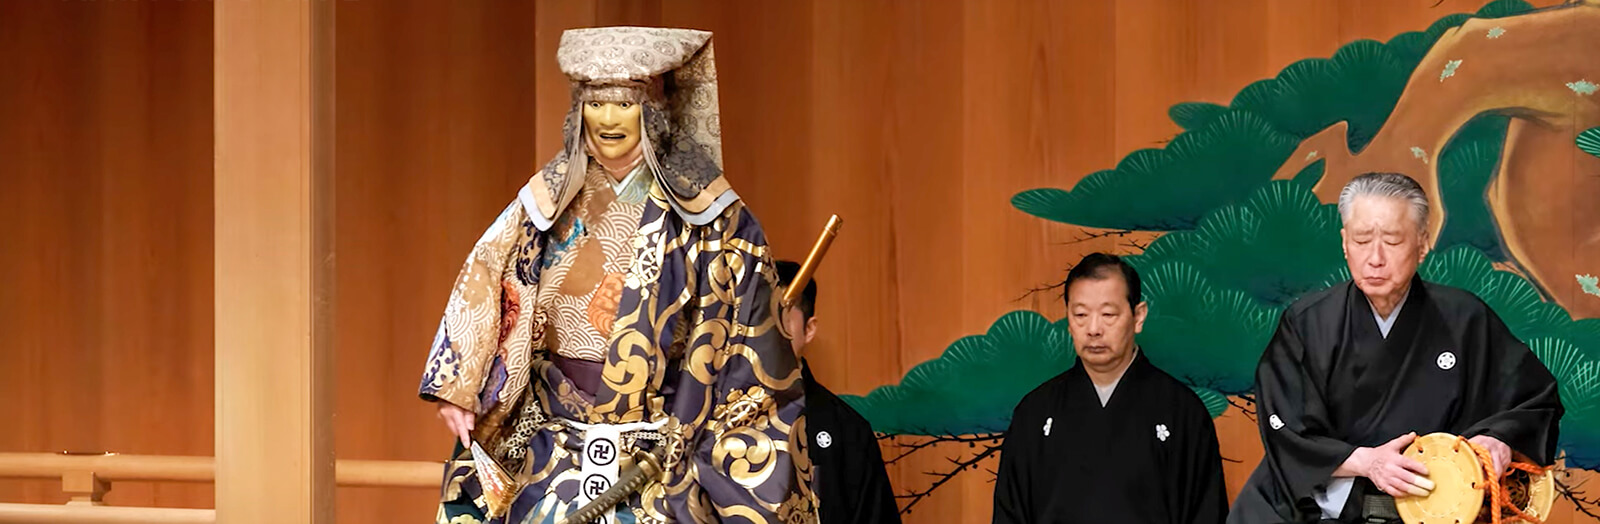 Kanze Noh Theater Offers an Exclusive Look at Japan's Traditional Arts